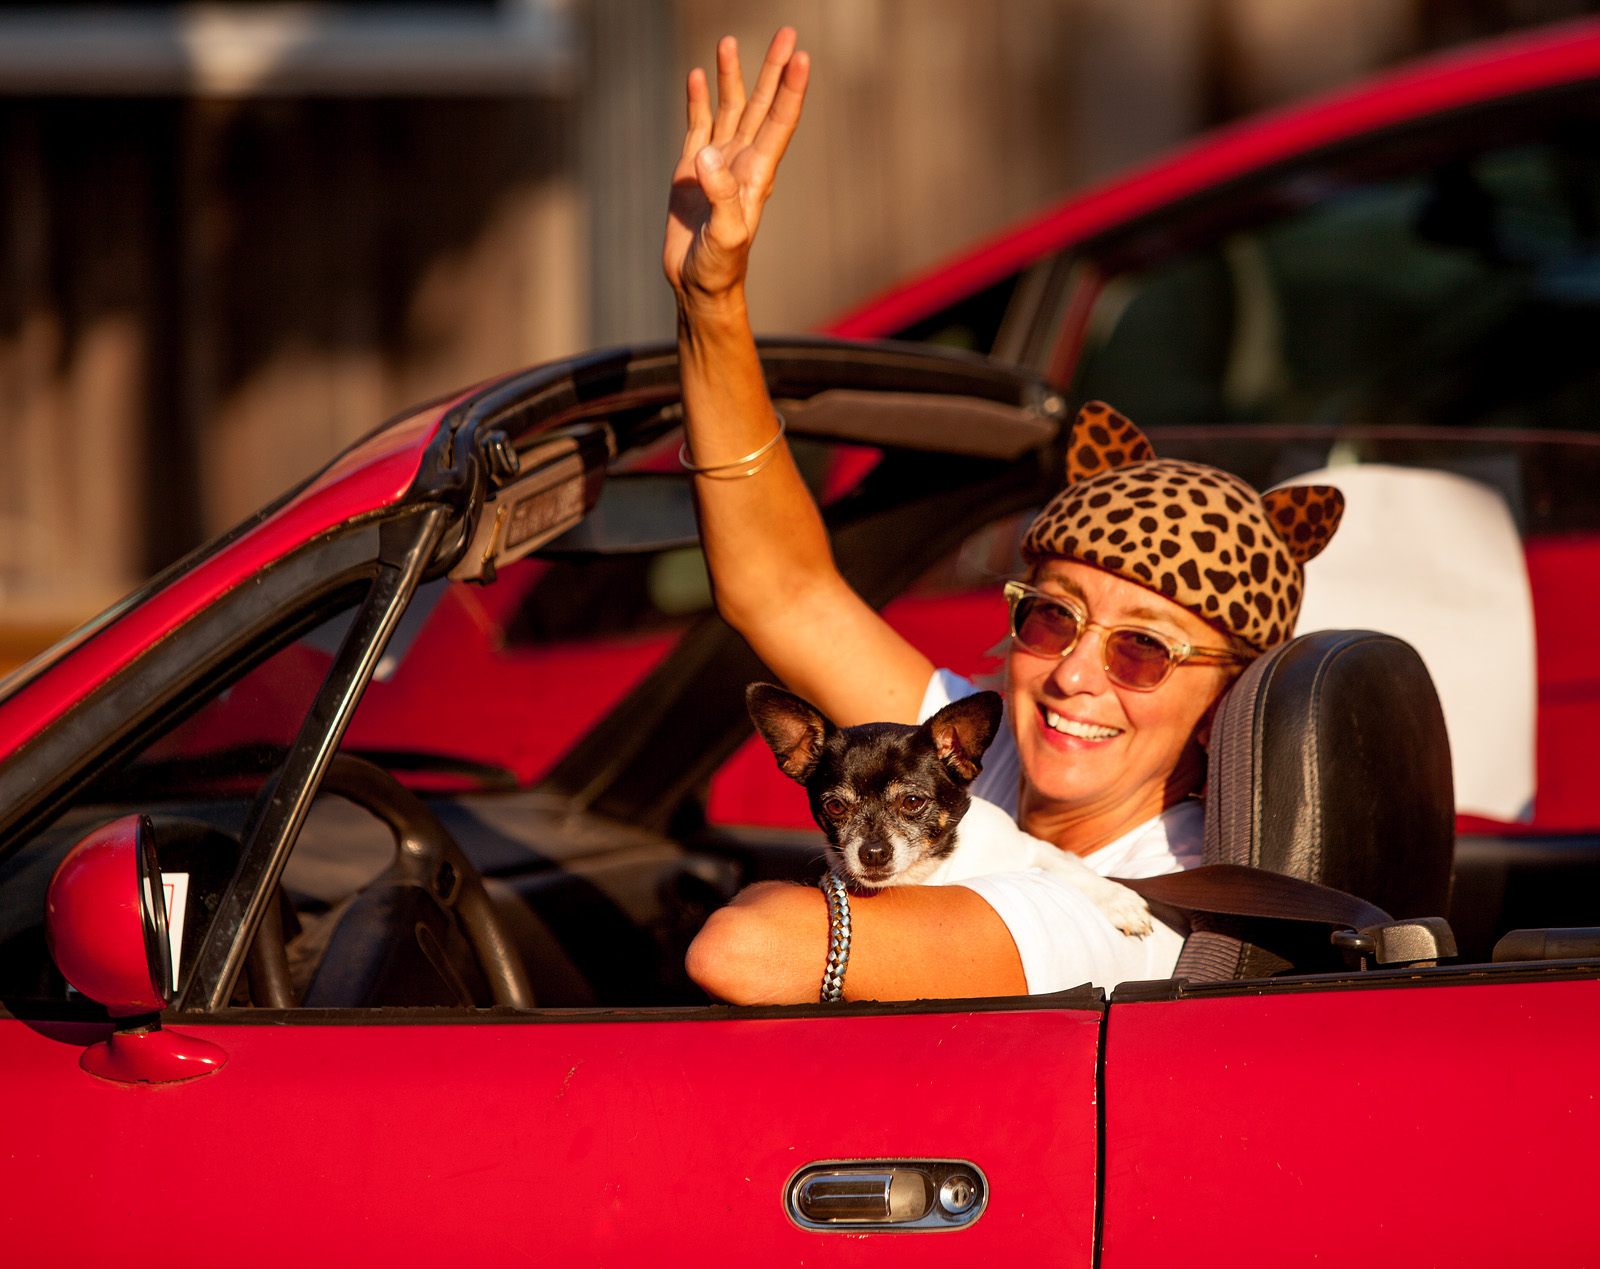 Waving goodbye and special thanks to Eugenia Kim for the lovely chapeaus